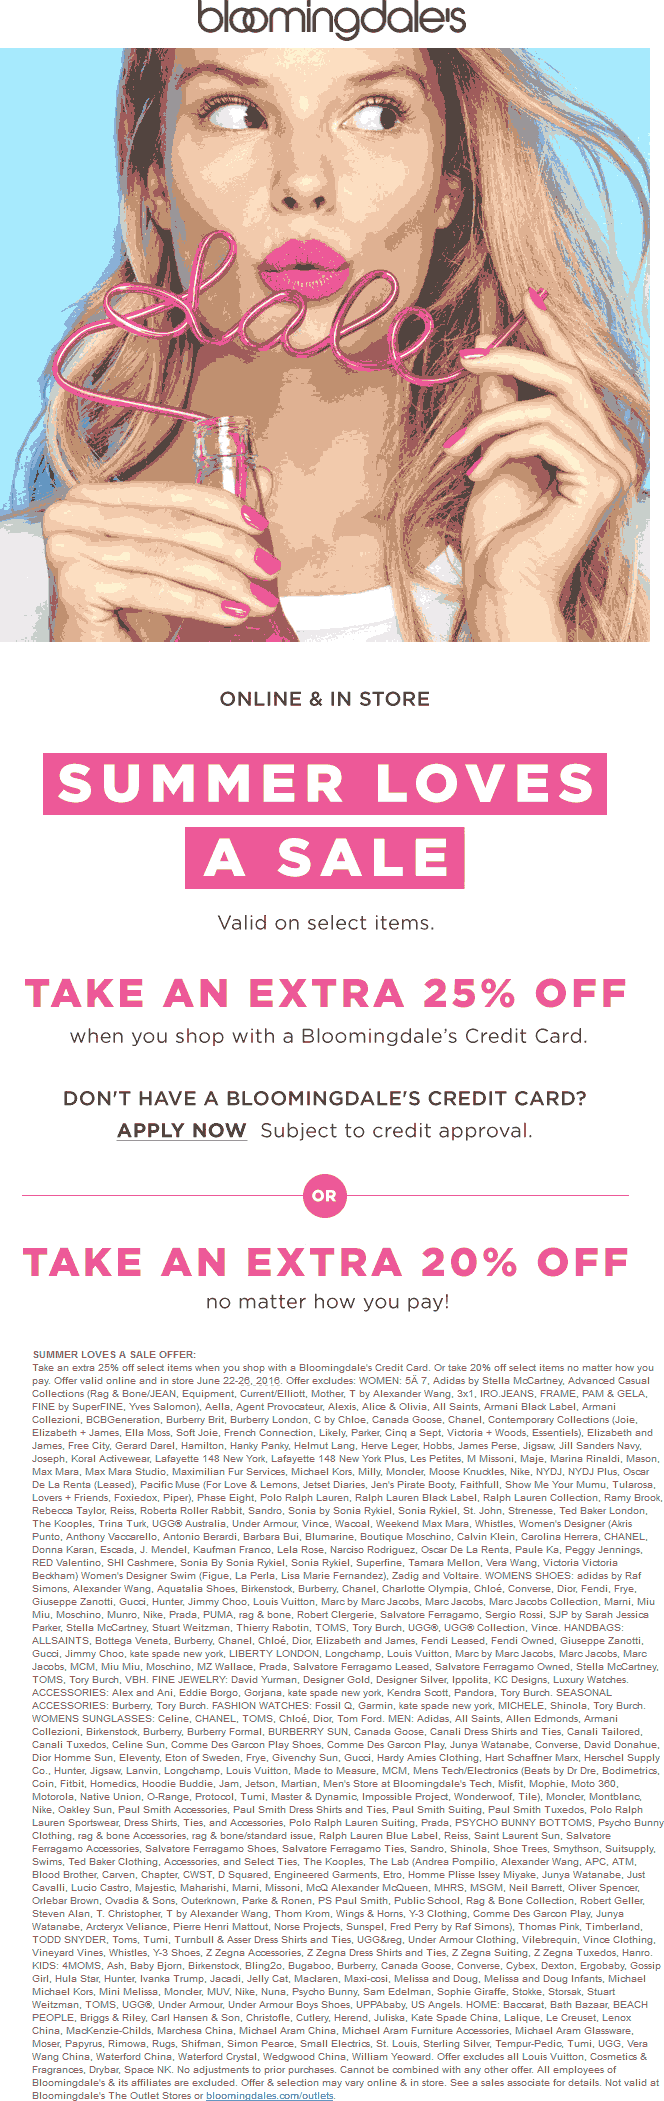 Bloomingdales Coupon March 2018 Extra 20% off at Bloomingdales, ditto online